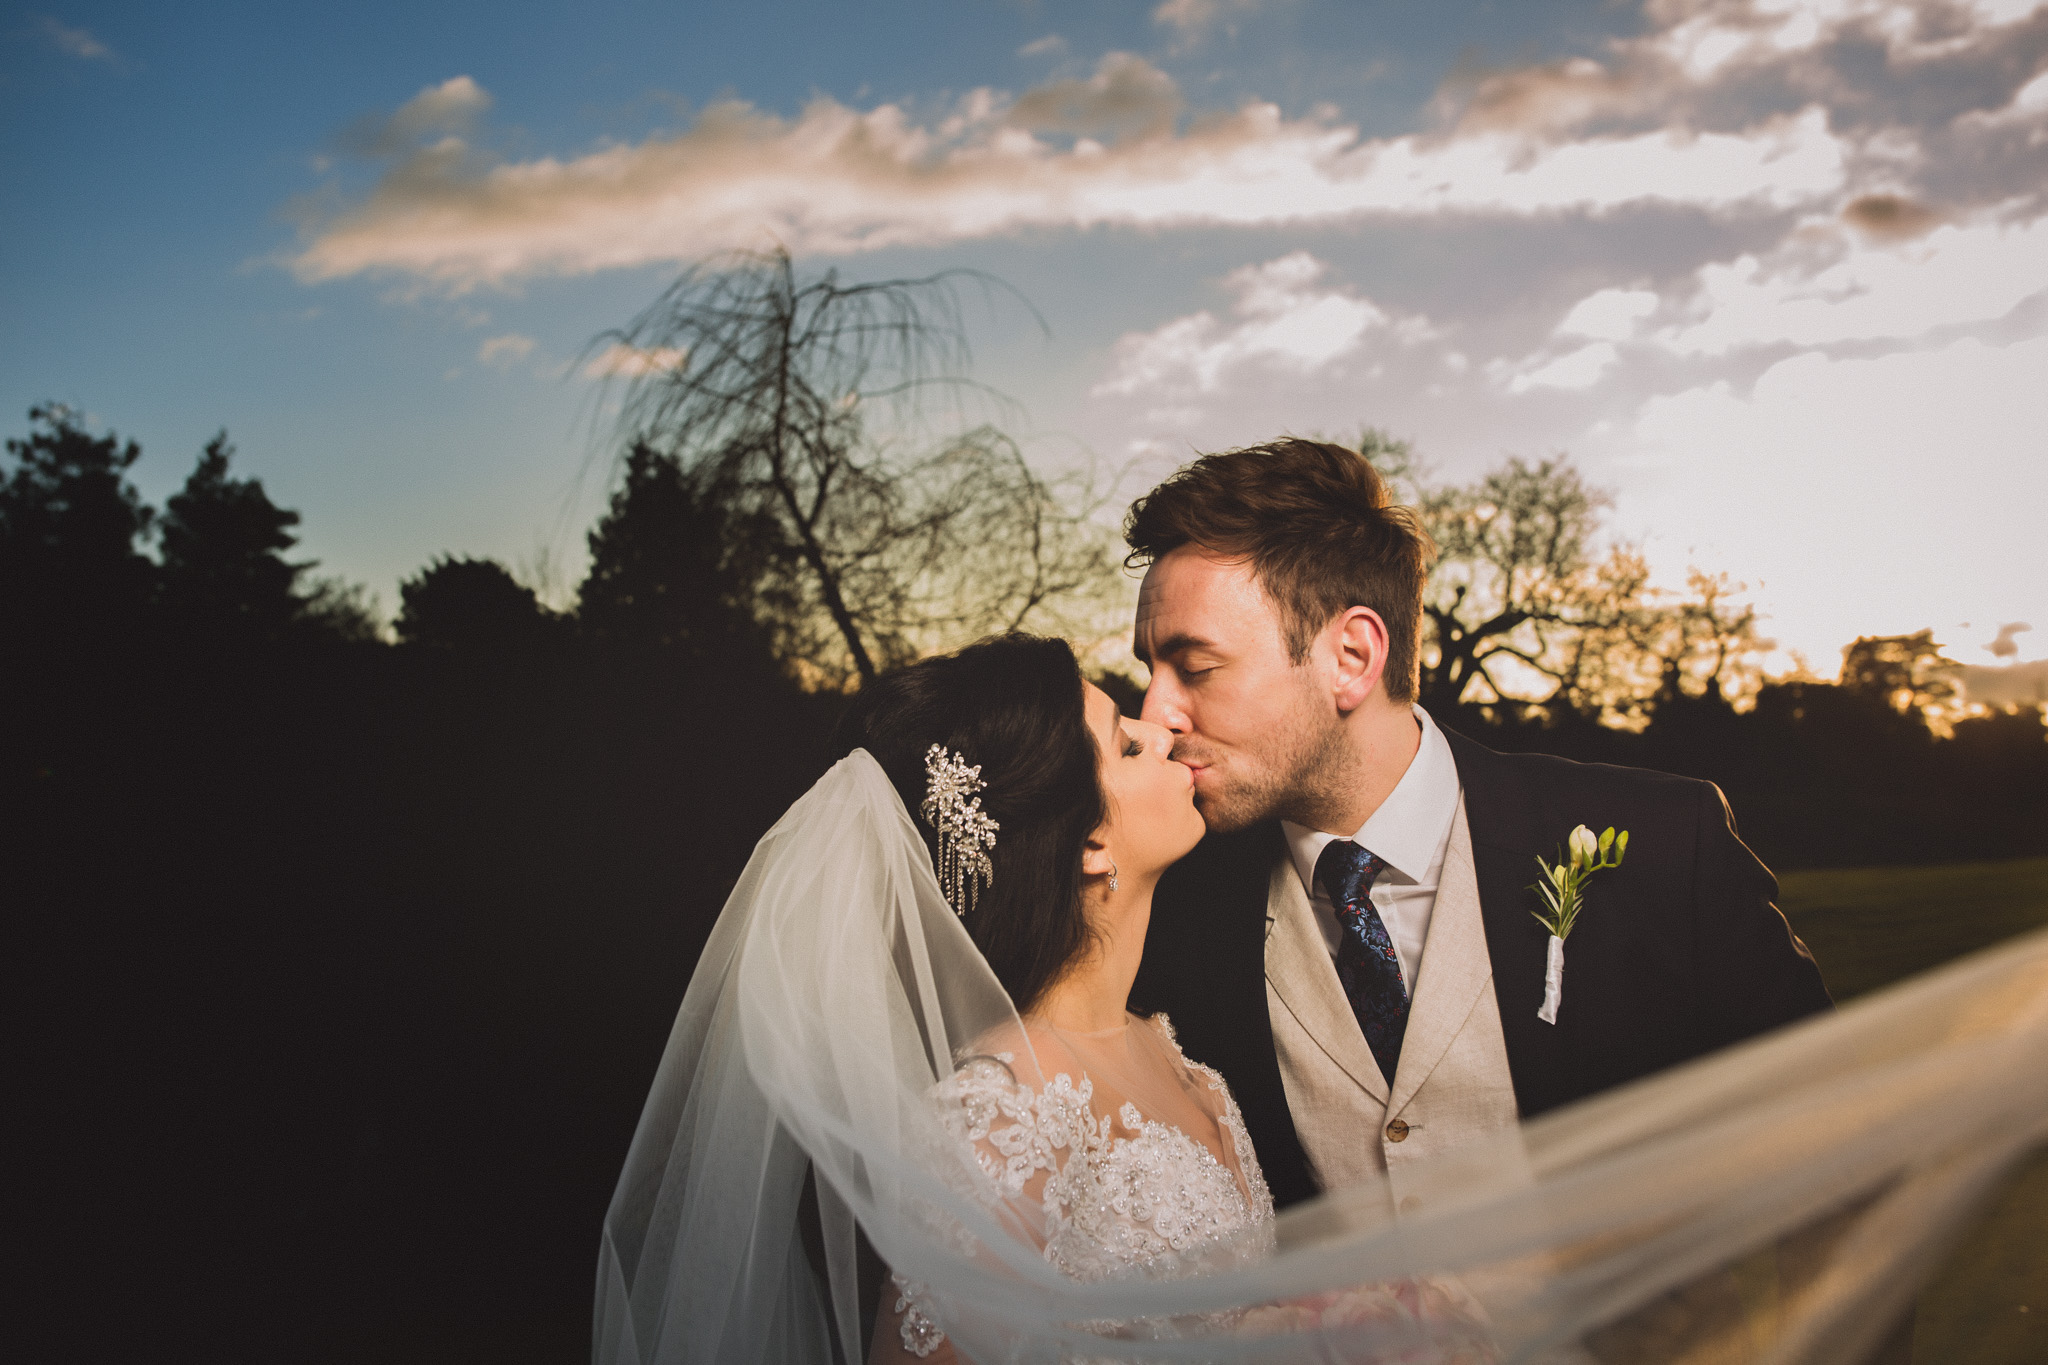 Northbrook Park: Zohreh & Kirk Wedding Photoshoot